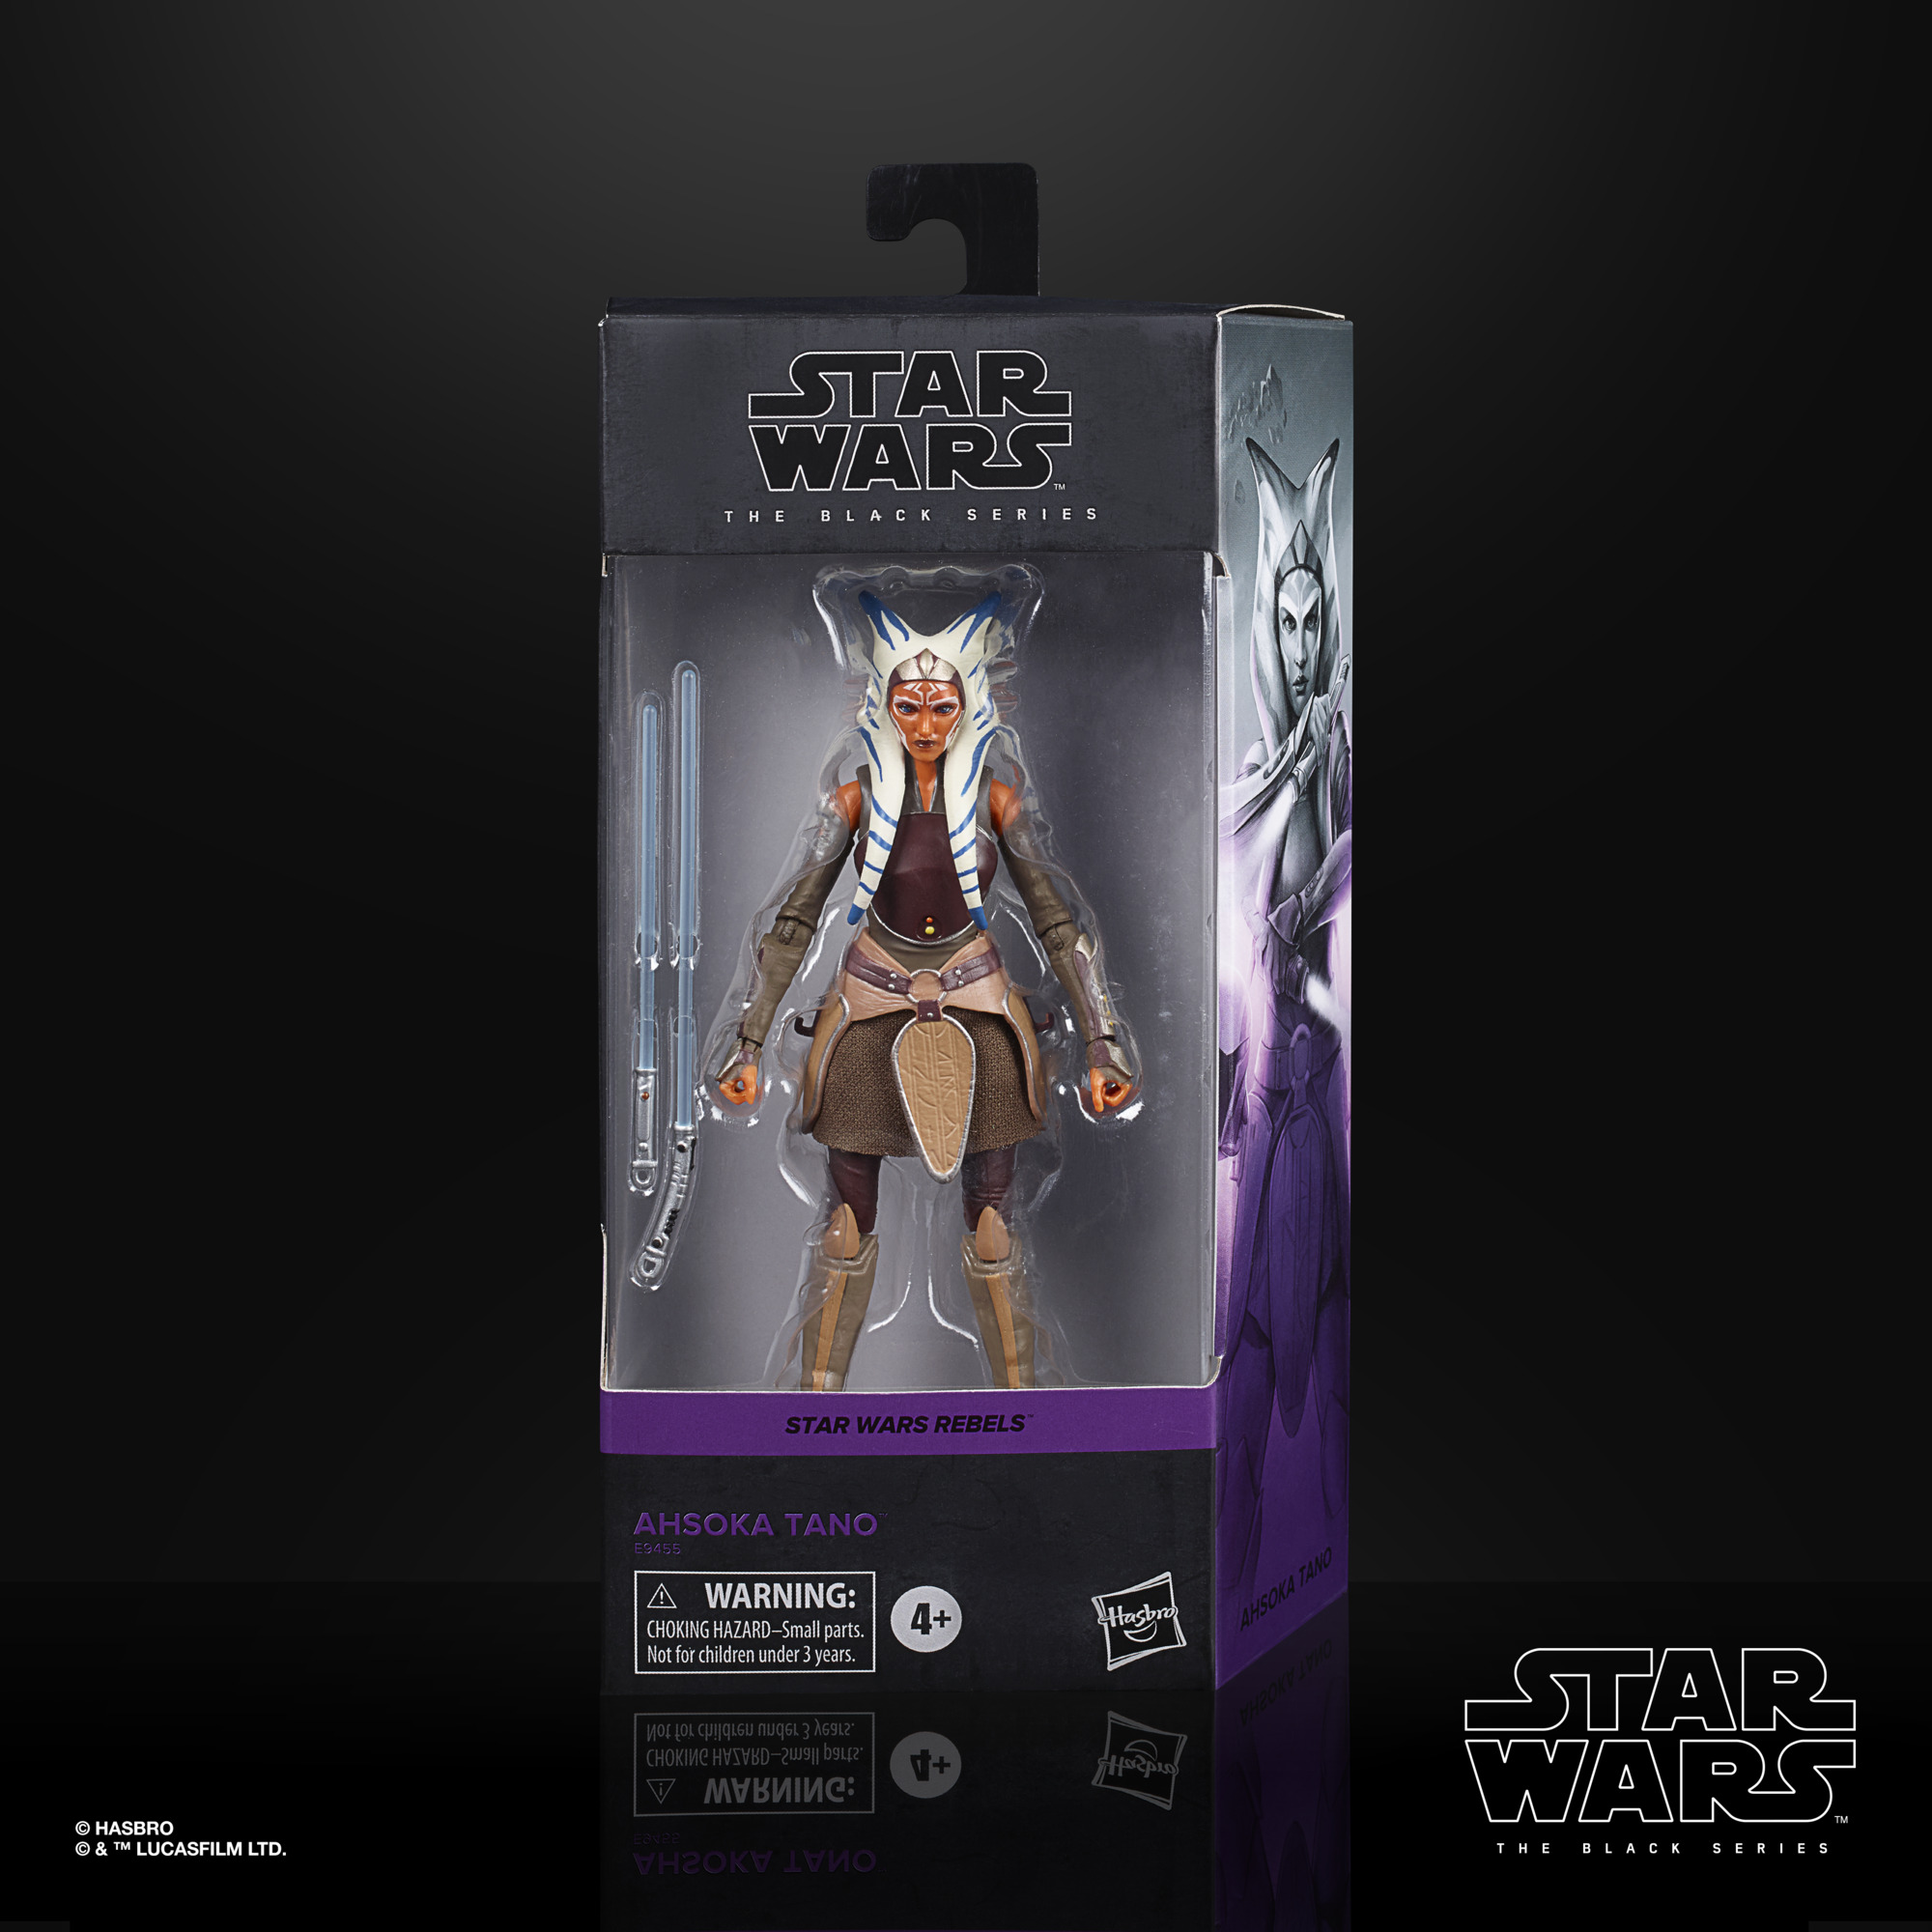 Star Wars The Black Series Ahsoka Tano Action Figure 15cm E94555L00 5010993750153